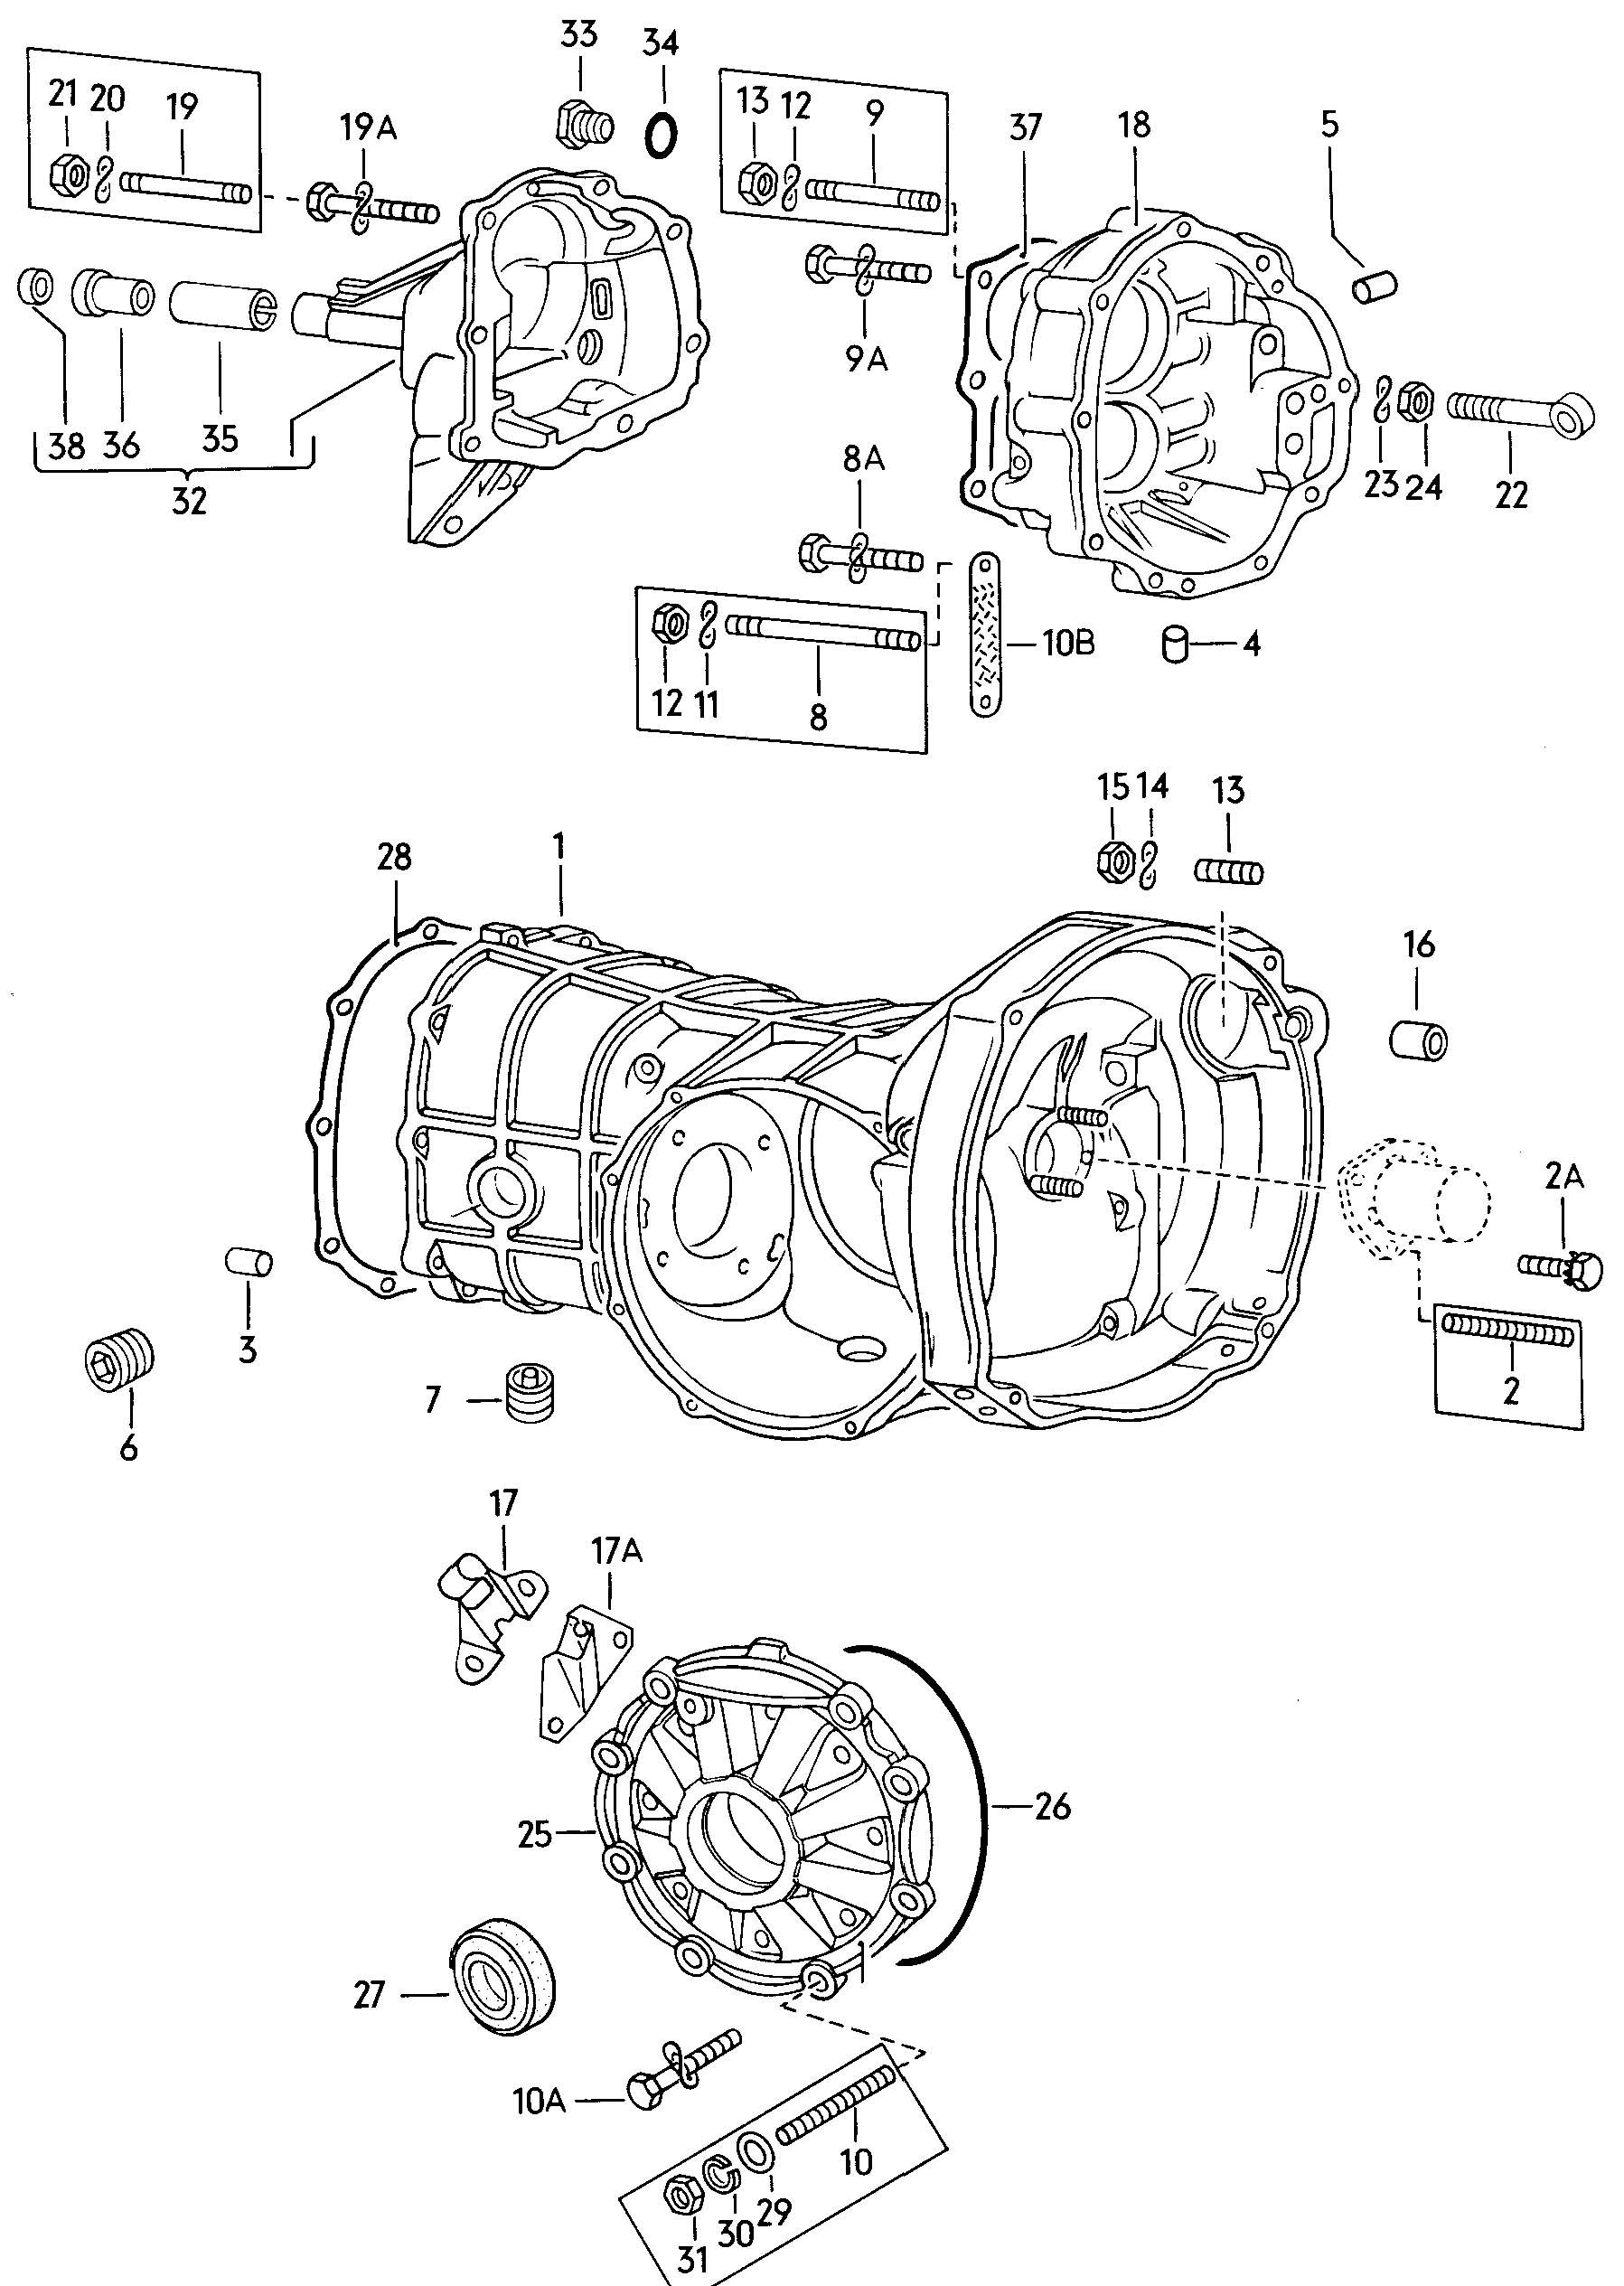 Transmission Case Manual Transmission